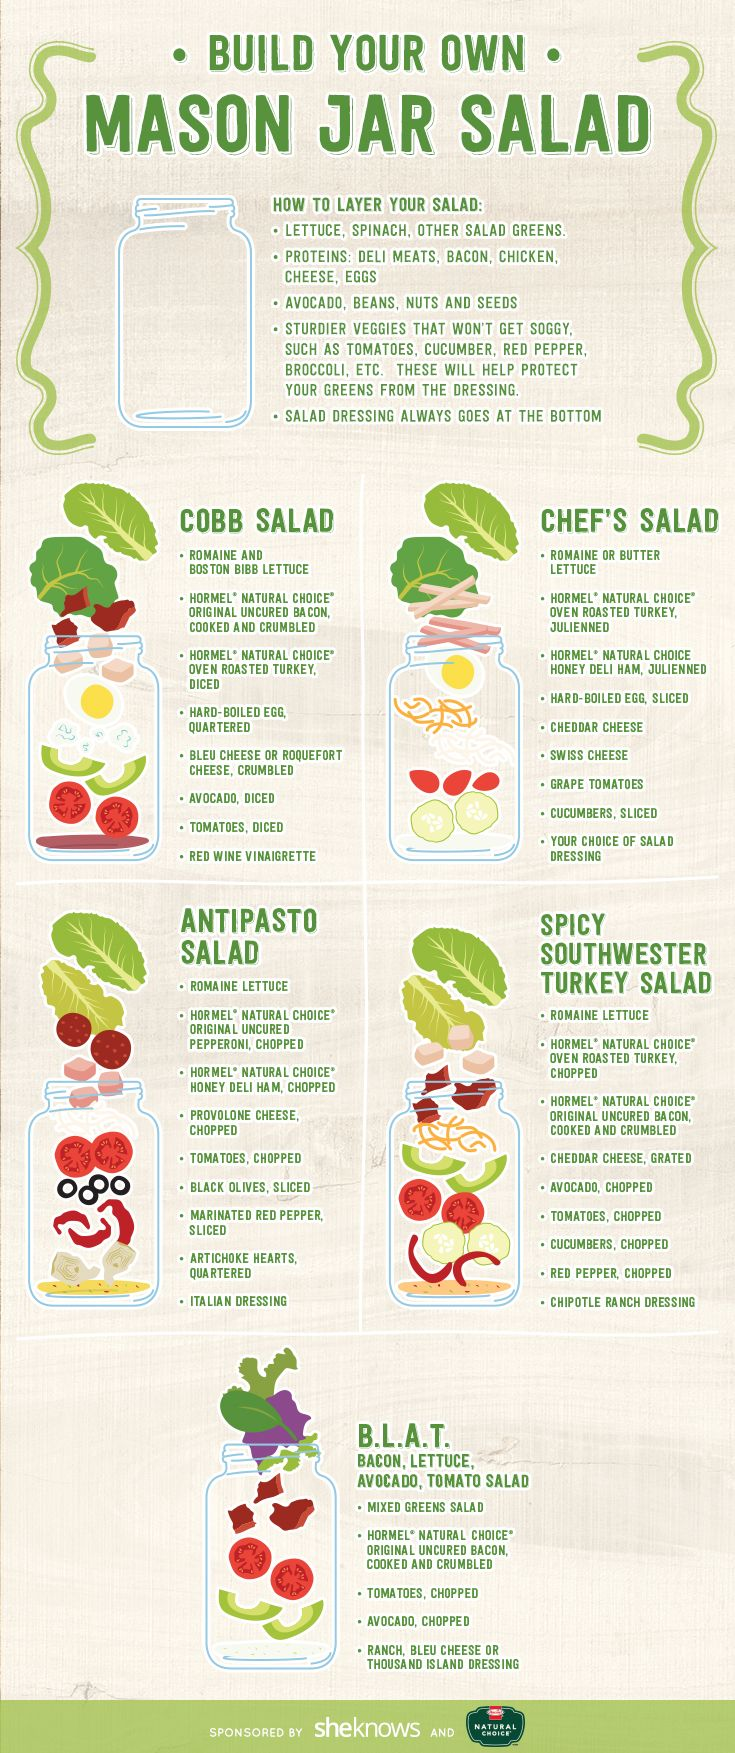 Mason jar salads are a convenient way to pack better-for-you lunches every day. They can easily be made a day or two ahead, they travel well and your lettuce doesn't get soggy from the dressing before you are ready to eat. | #healthy #Recipes